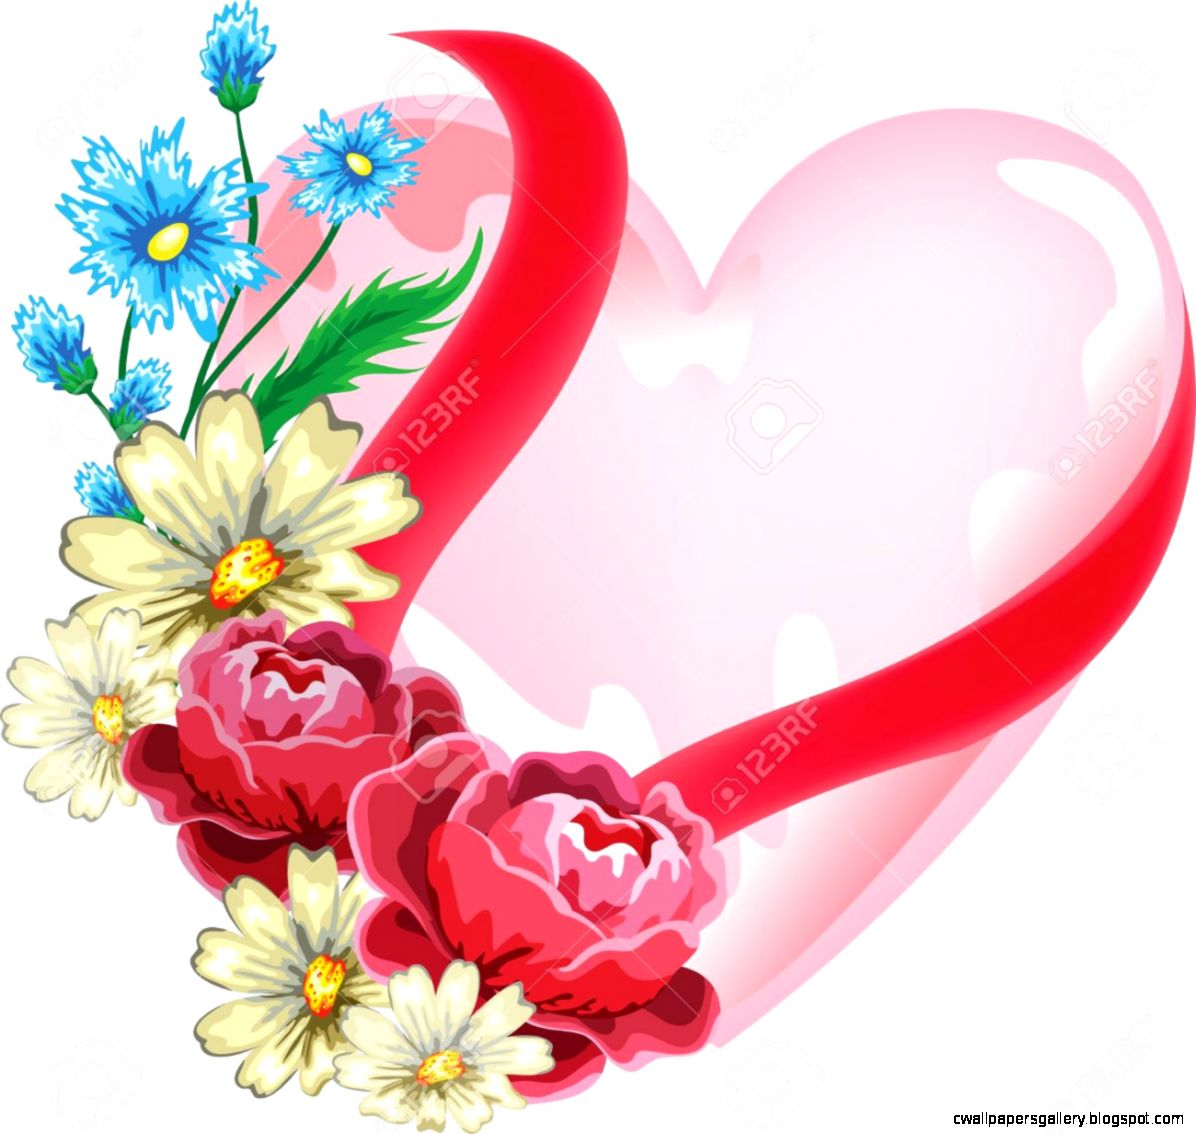 Heart With Flowers Royalty Free Cliparts Vectors And Stock